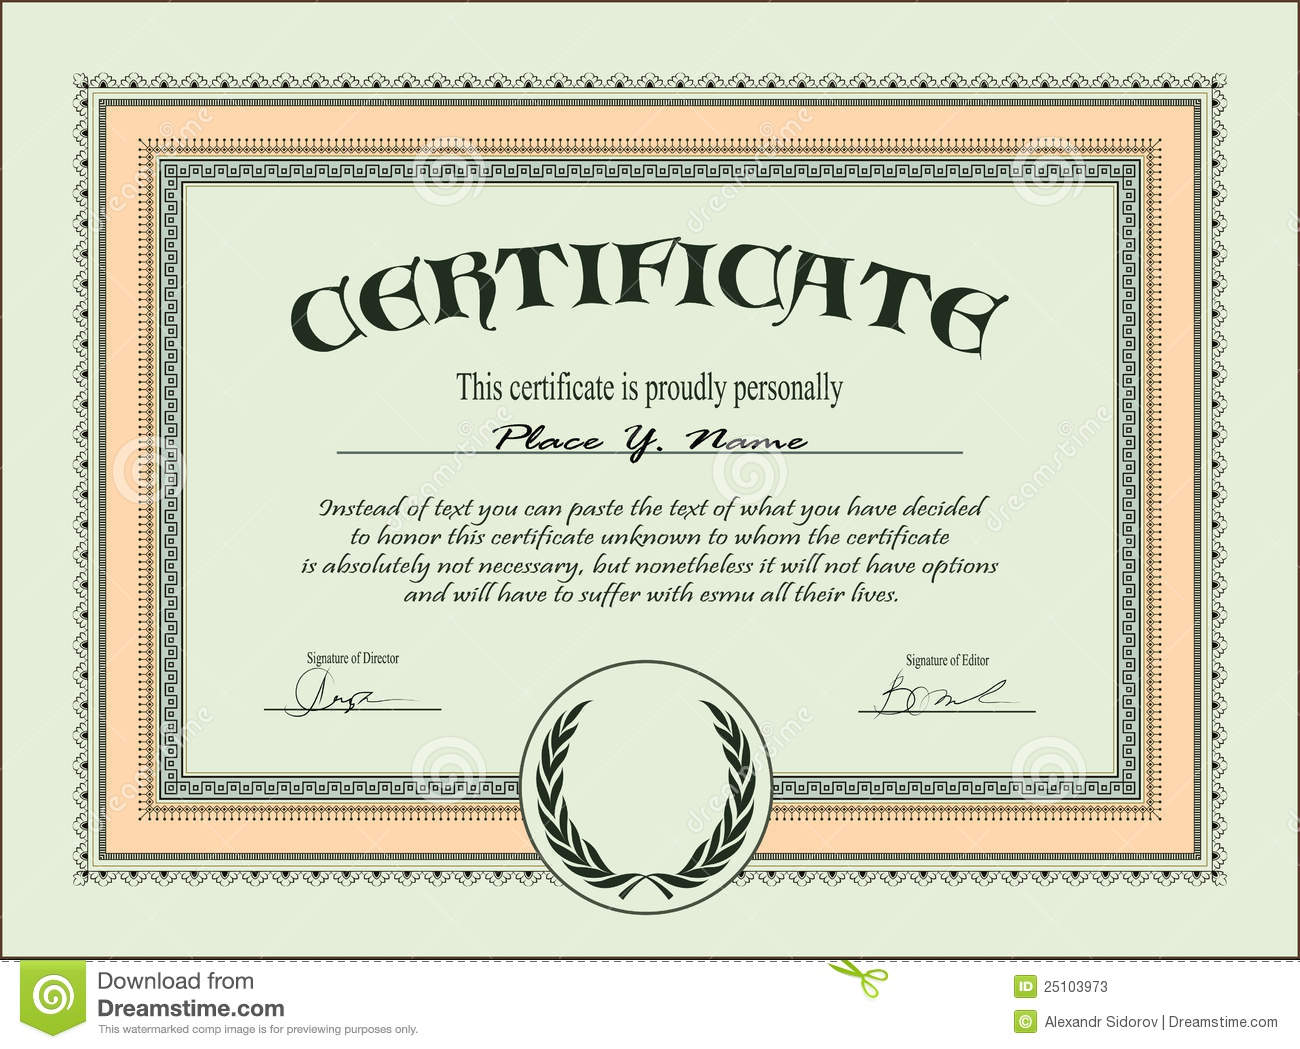 Free Certificate Templates business templates employee award – Employee of the Month Certificate Template Free